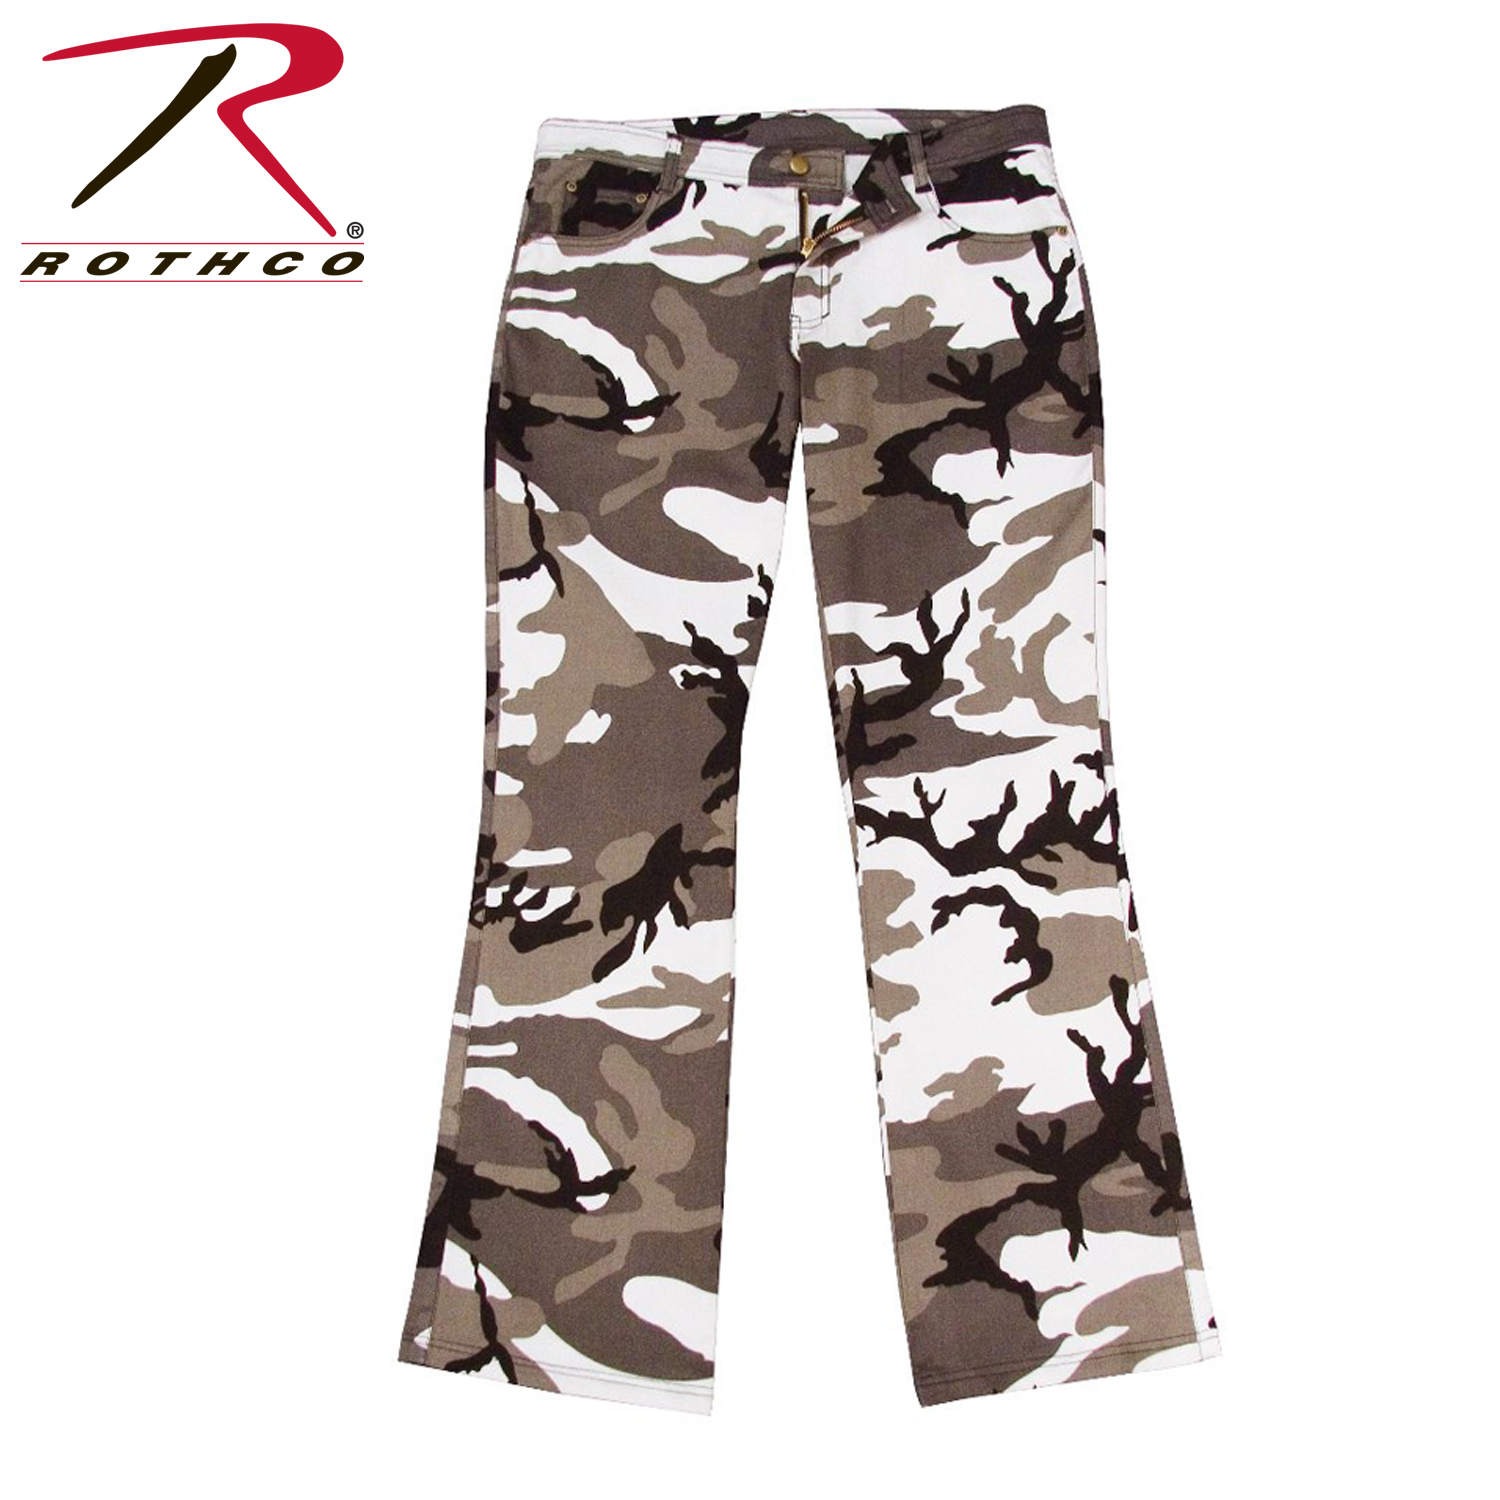 Perfect Women39s Camo Army Cargo Skinny Pants New With Tag At Amazon Women